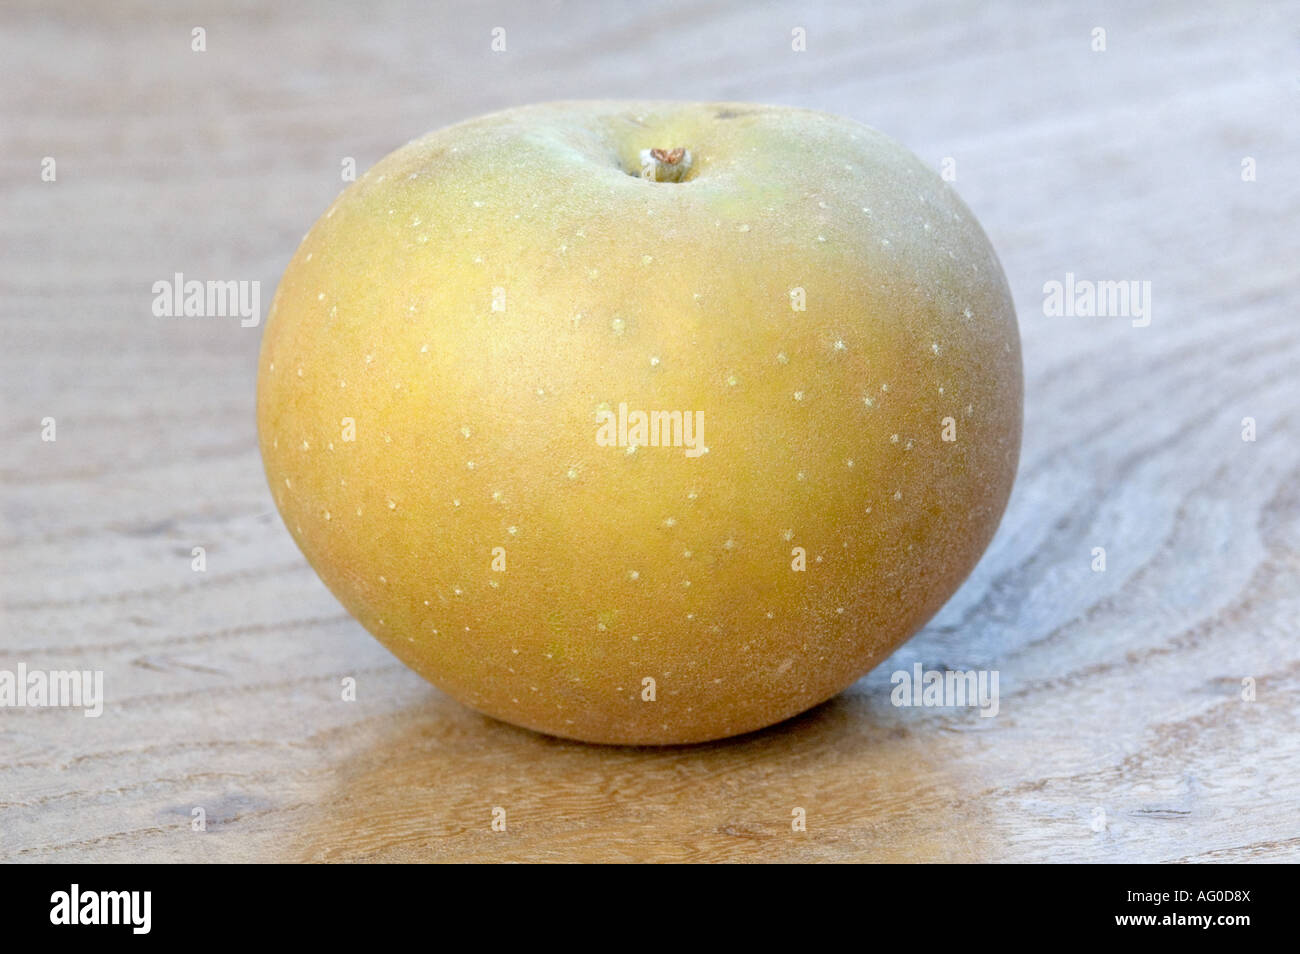 Single Egremont Russet apple on grained wood - Stock Image